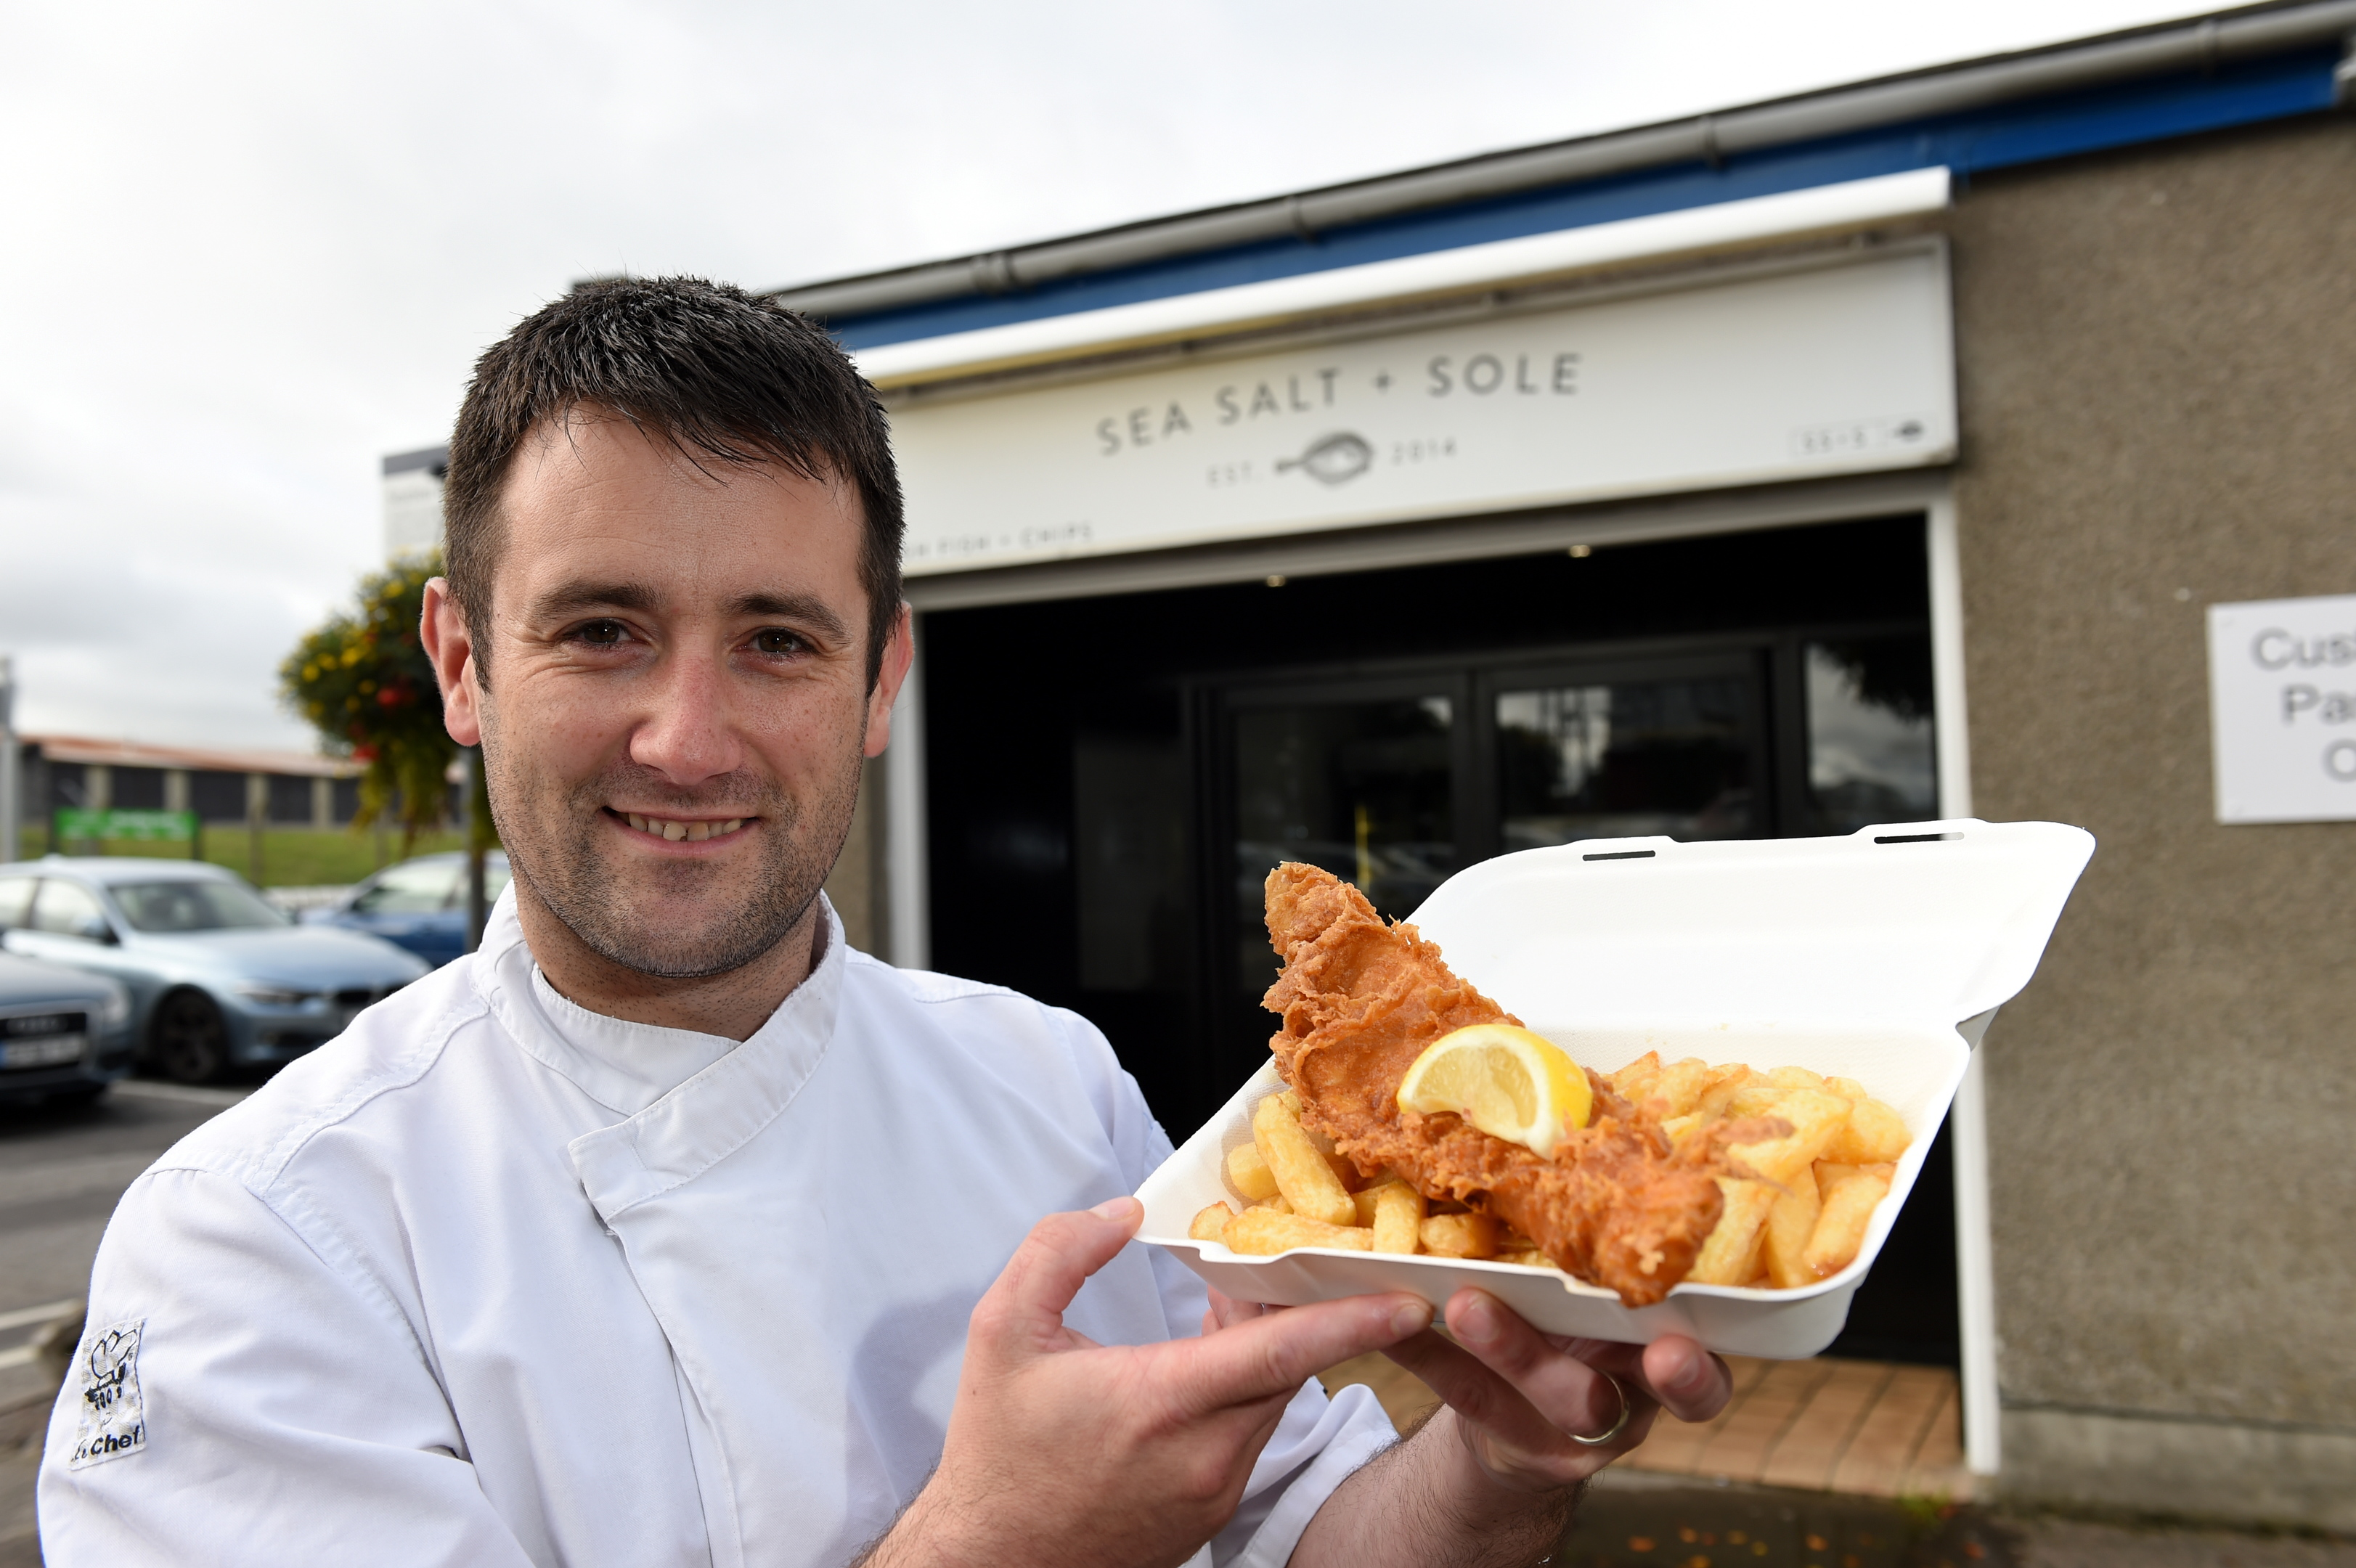 Rikki Pirie opened Sea Salt and Sole fish and chip shop in Dyce in 2014.